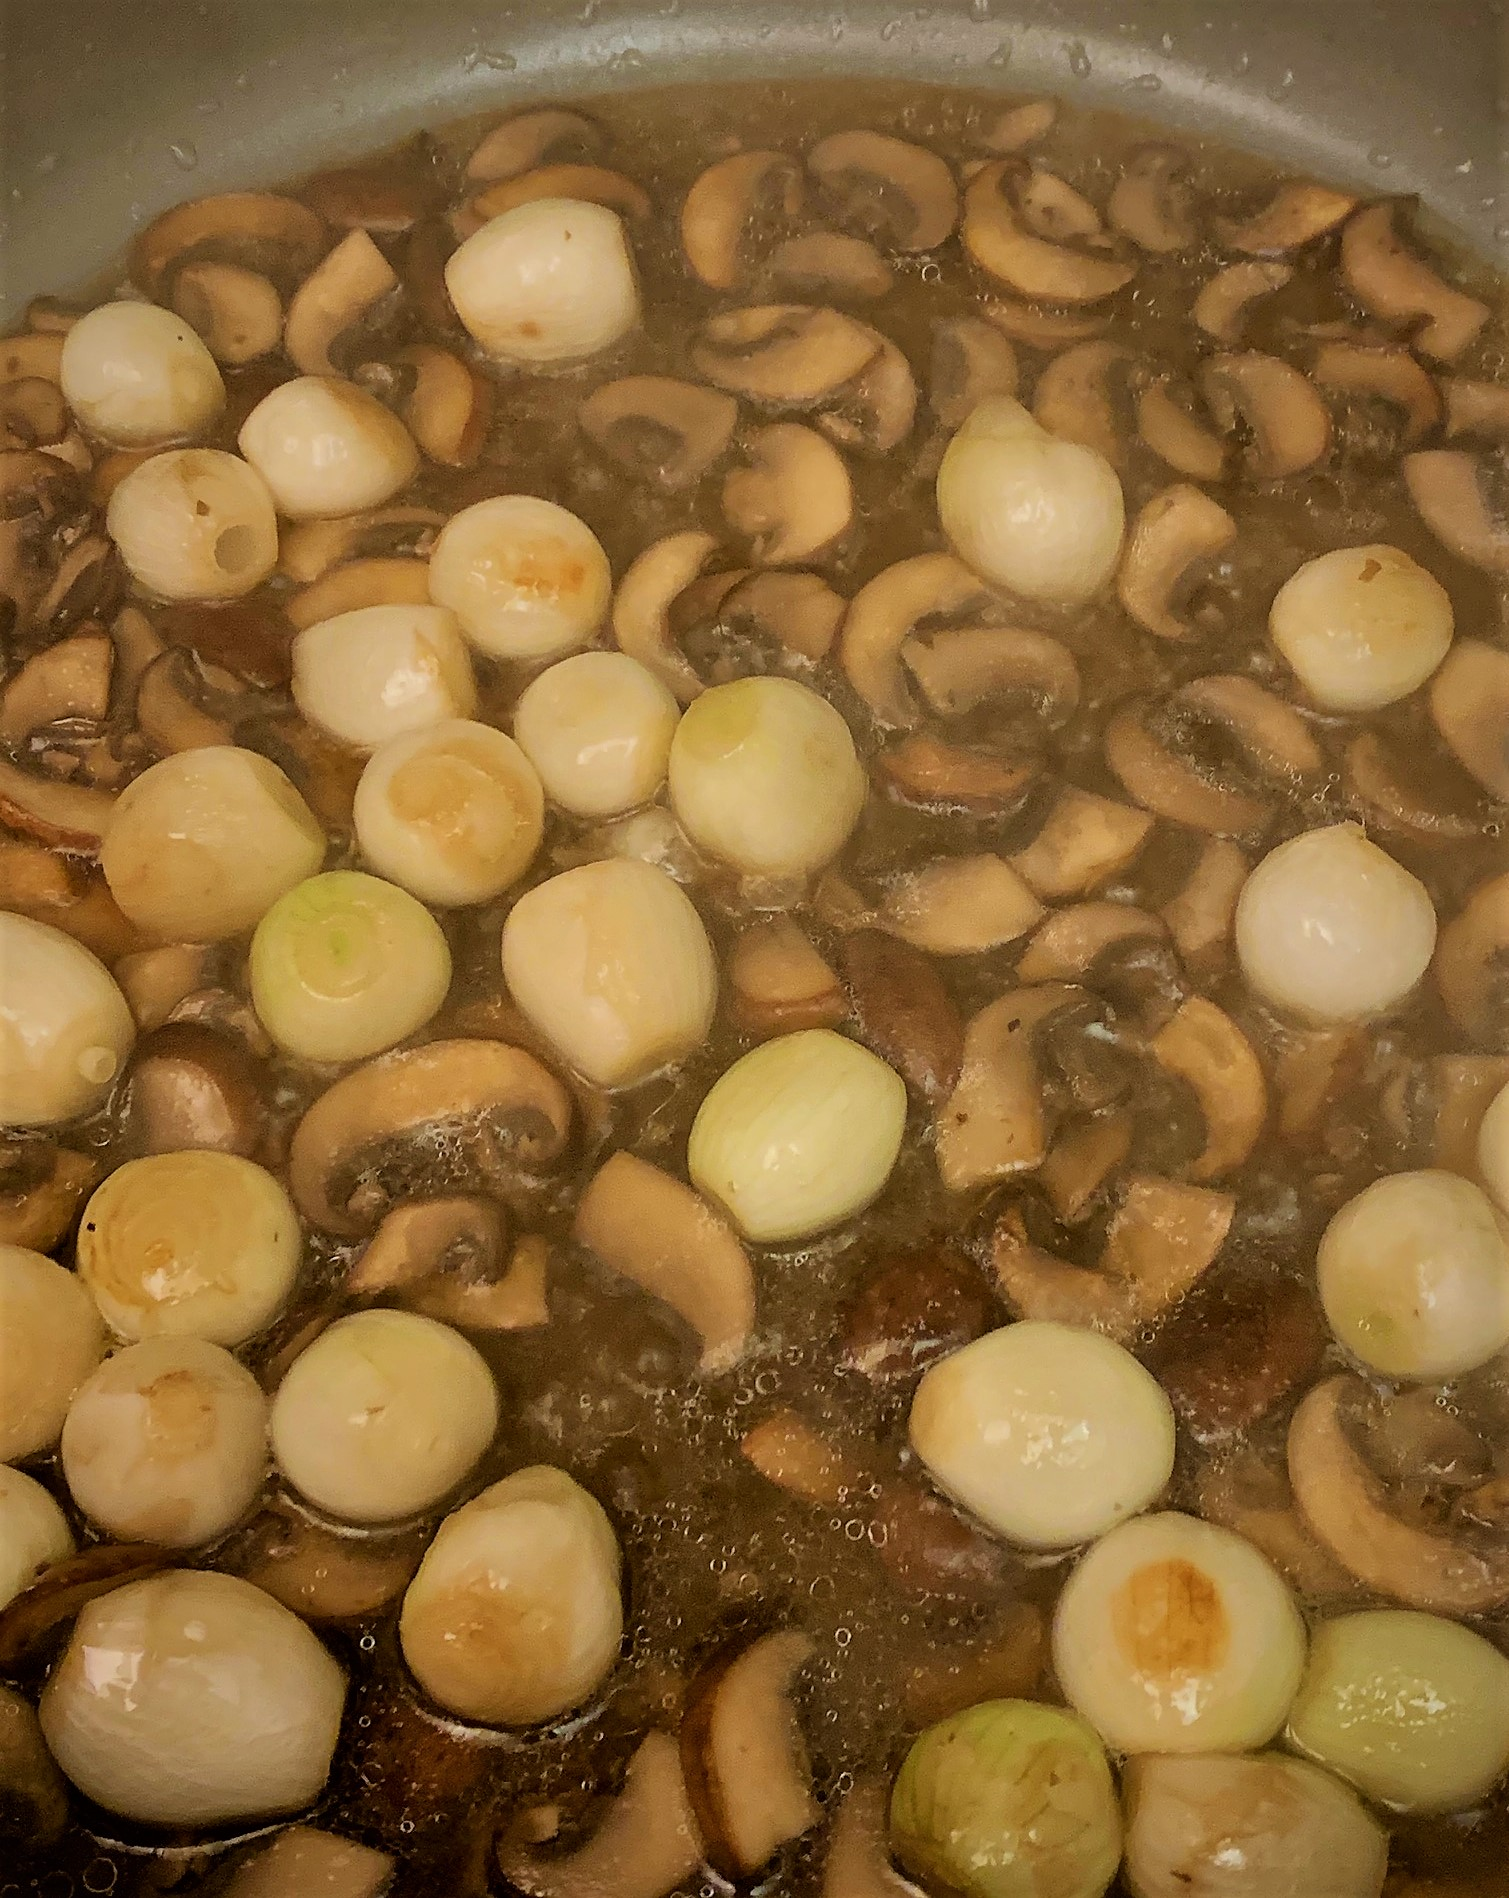 Braising Liquid added to the Mushrooms and Parl Onions